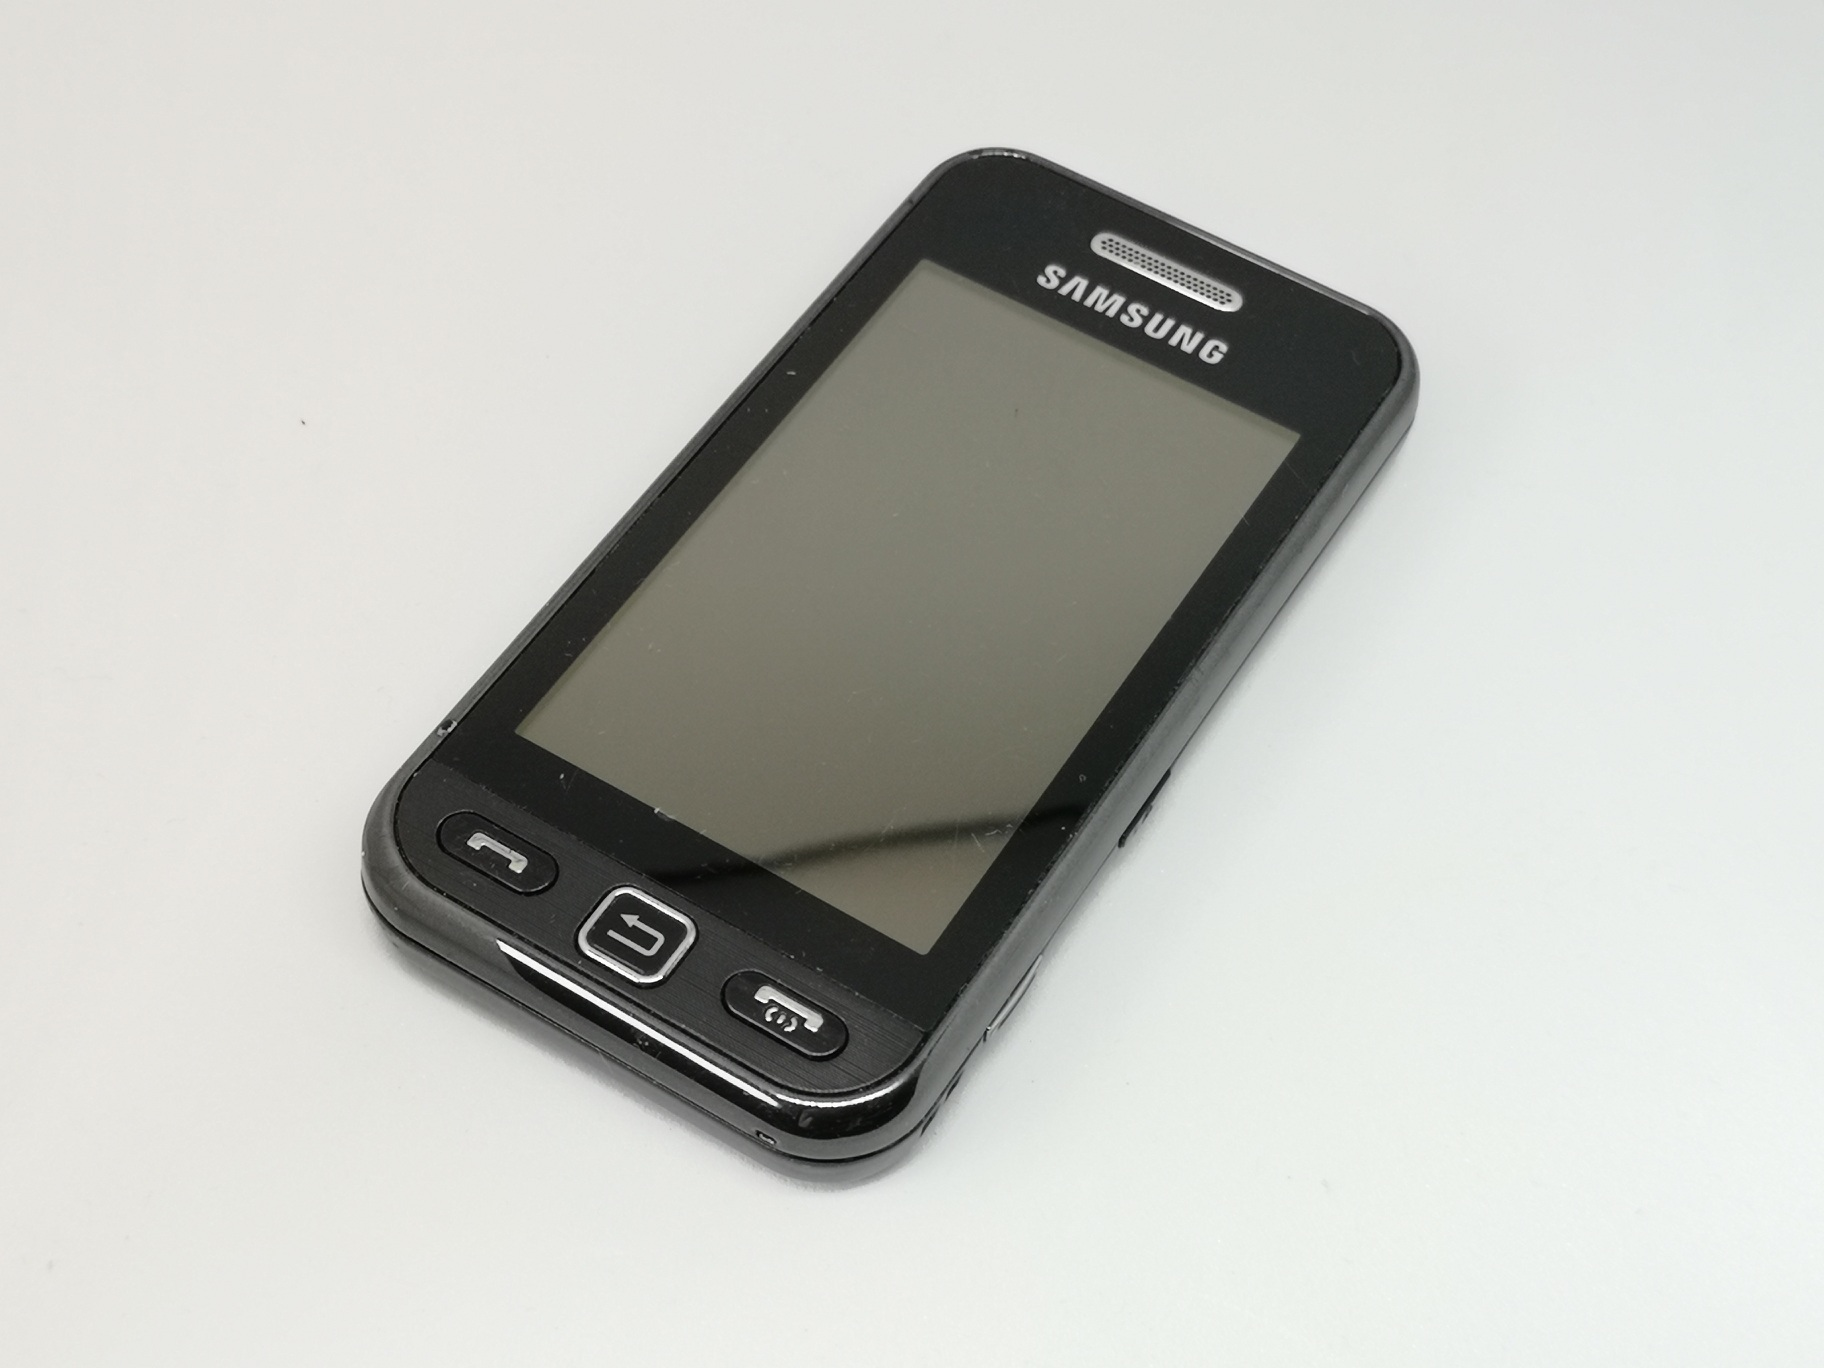 Samsung S5230 Review - Tocco Lite, Budget Touch